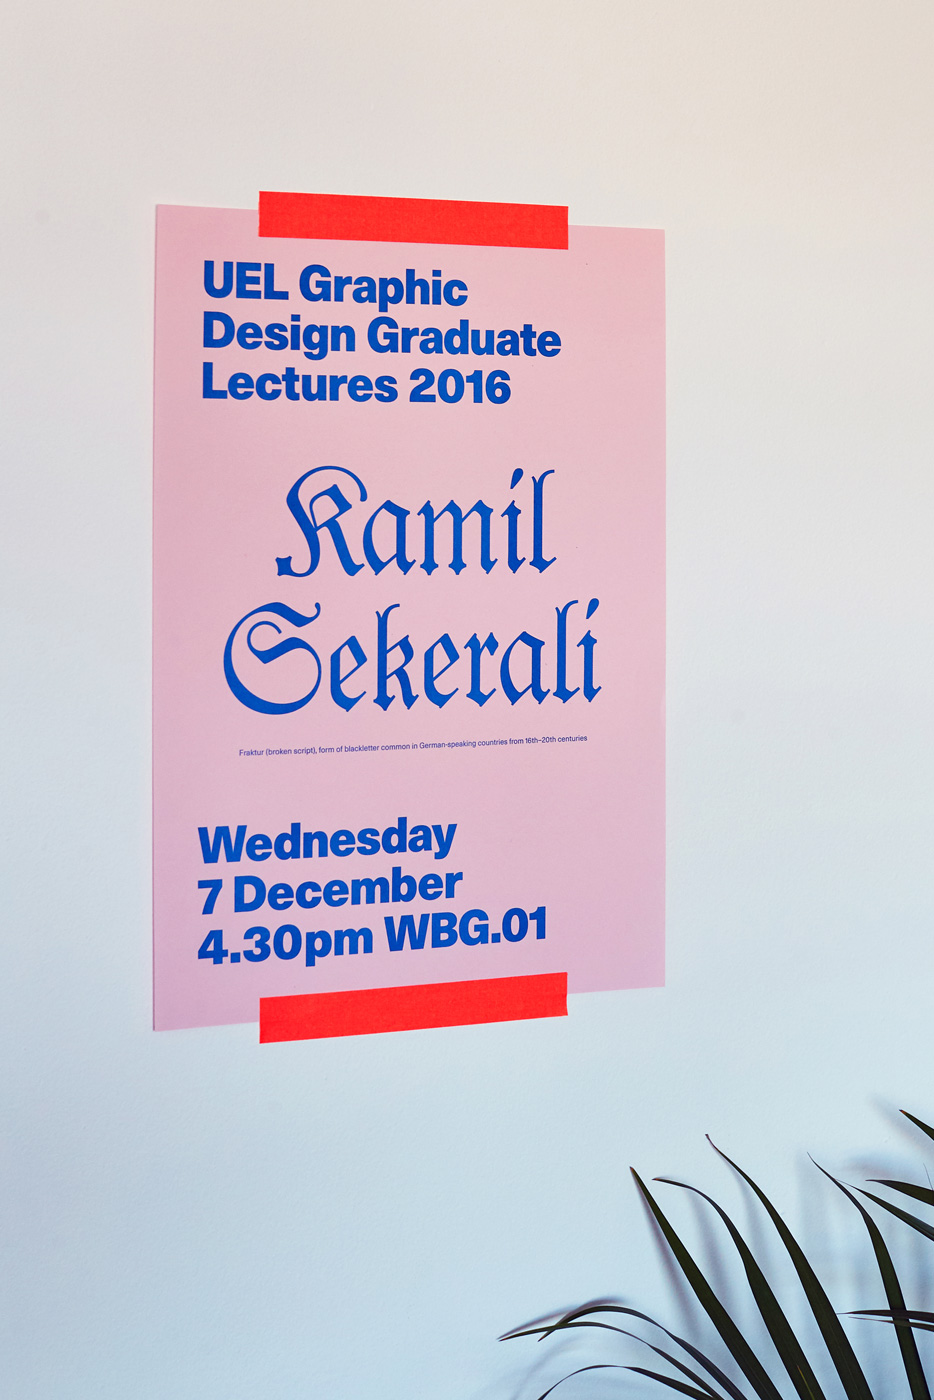 Stephen Barrett Graphic Design 0099_graduate_lectures_2016_00